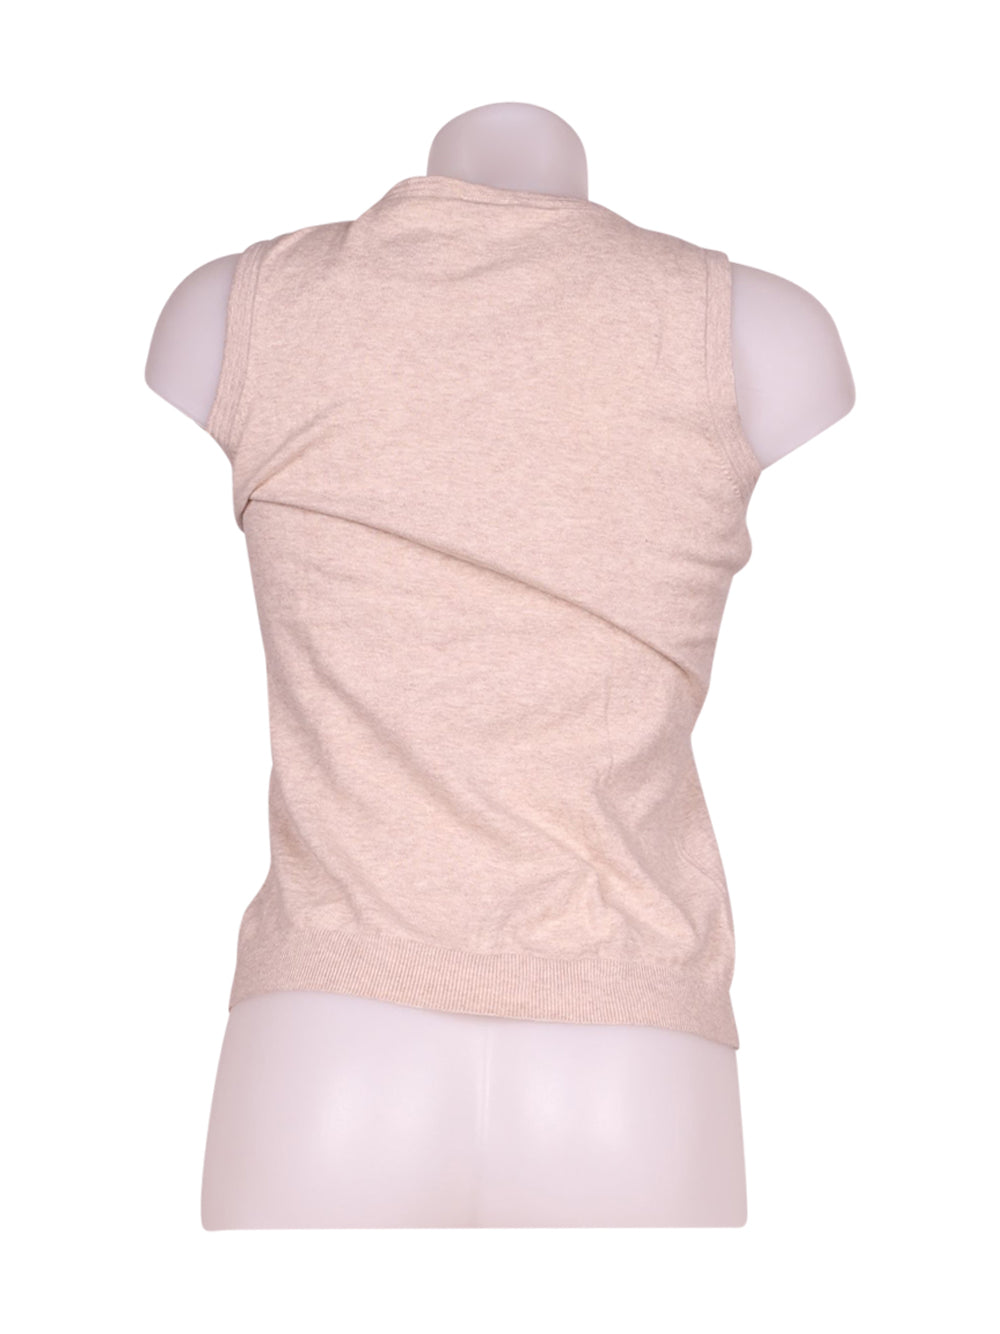 Back photo of Preloved Gap Beige Woman's waistcoat - size 10/M